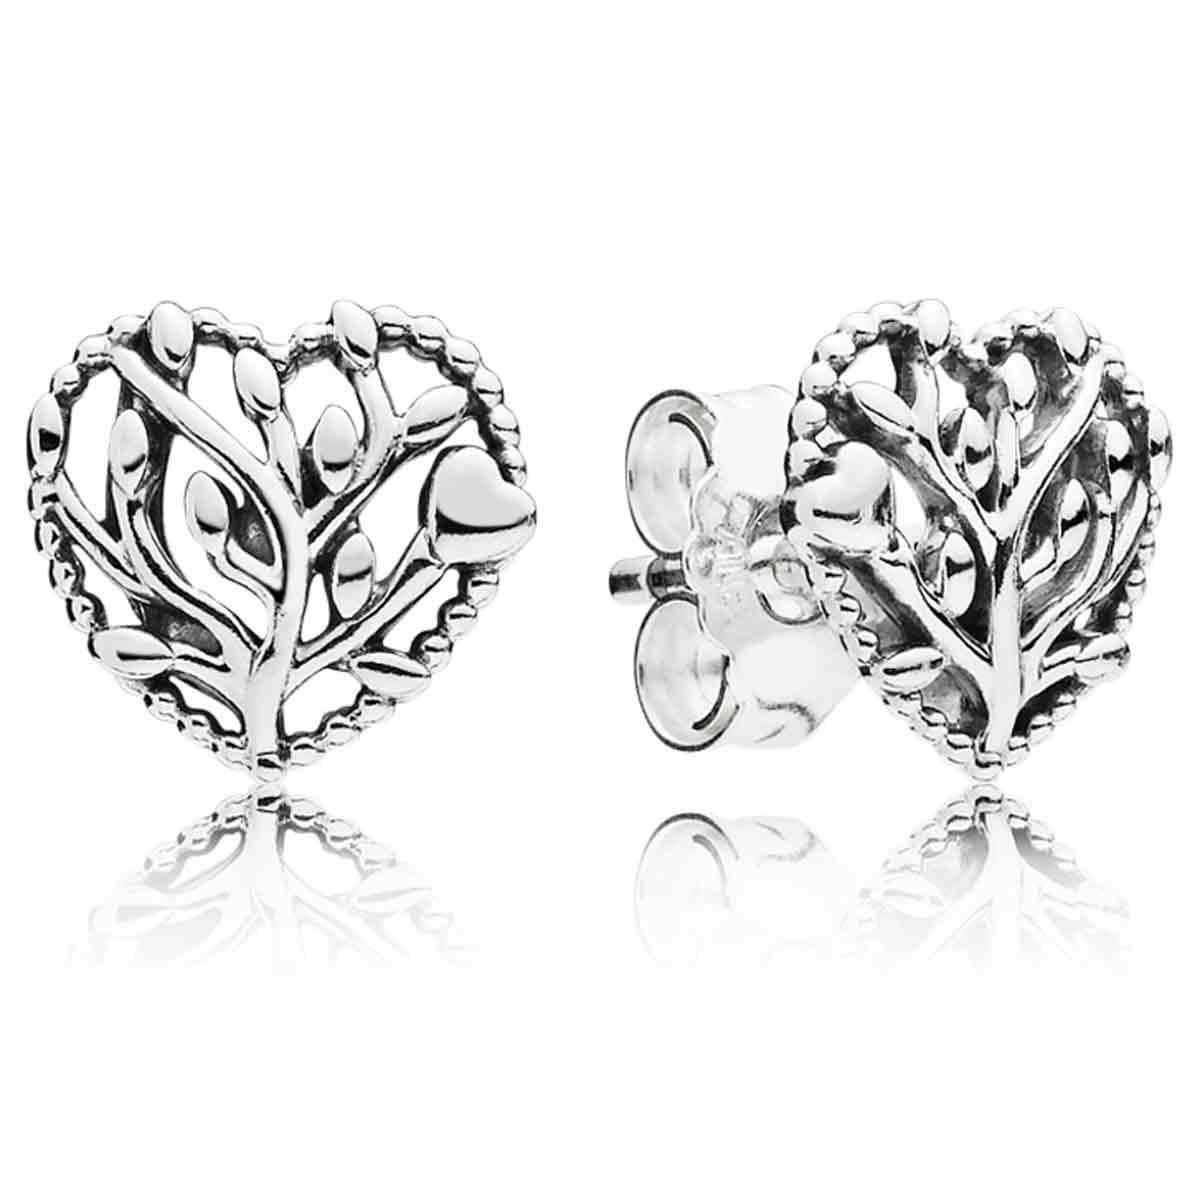 Pandora Women Silver Stud Earrings - 297085 lfHGZq5